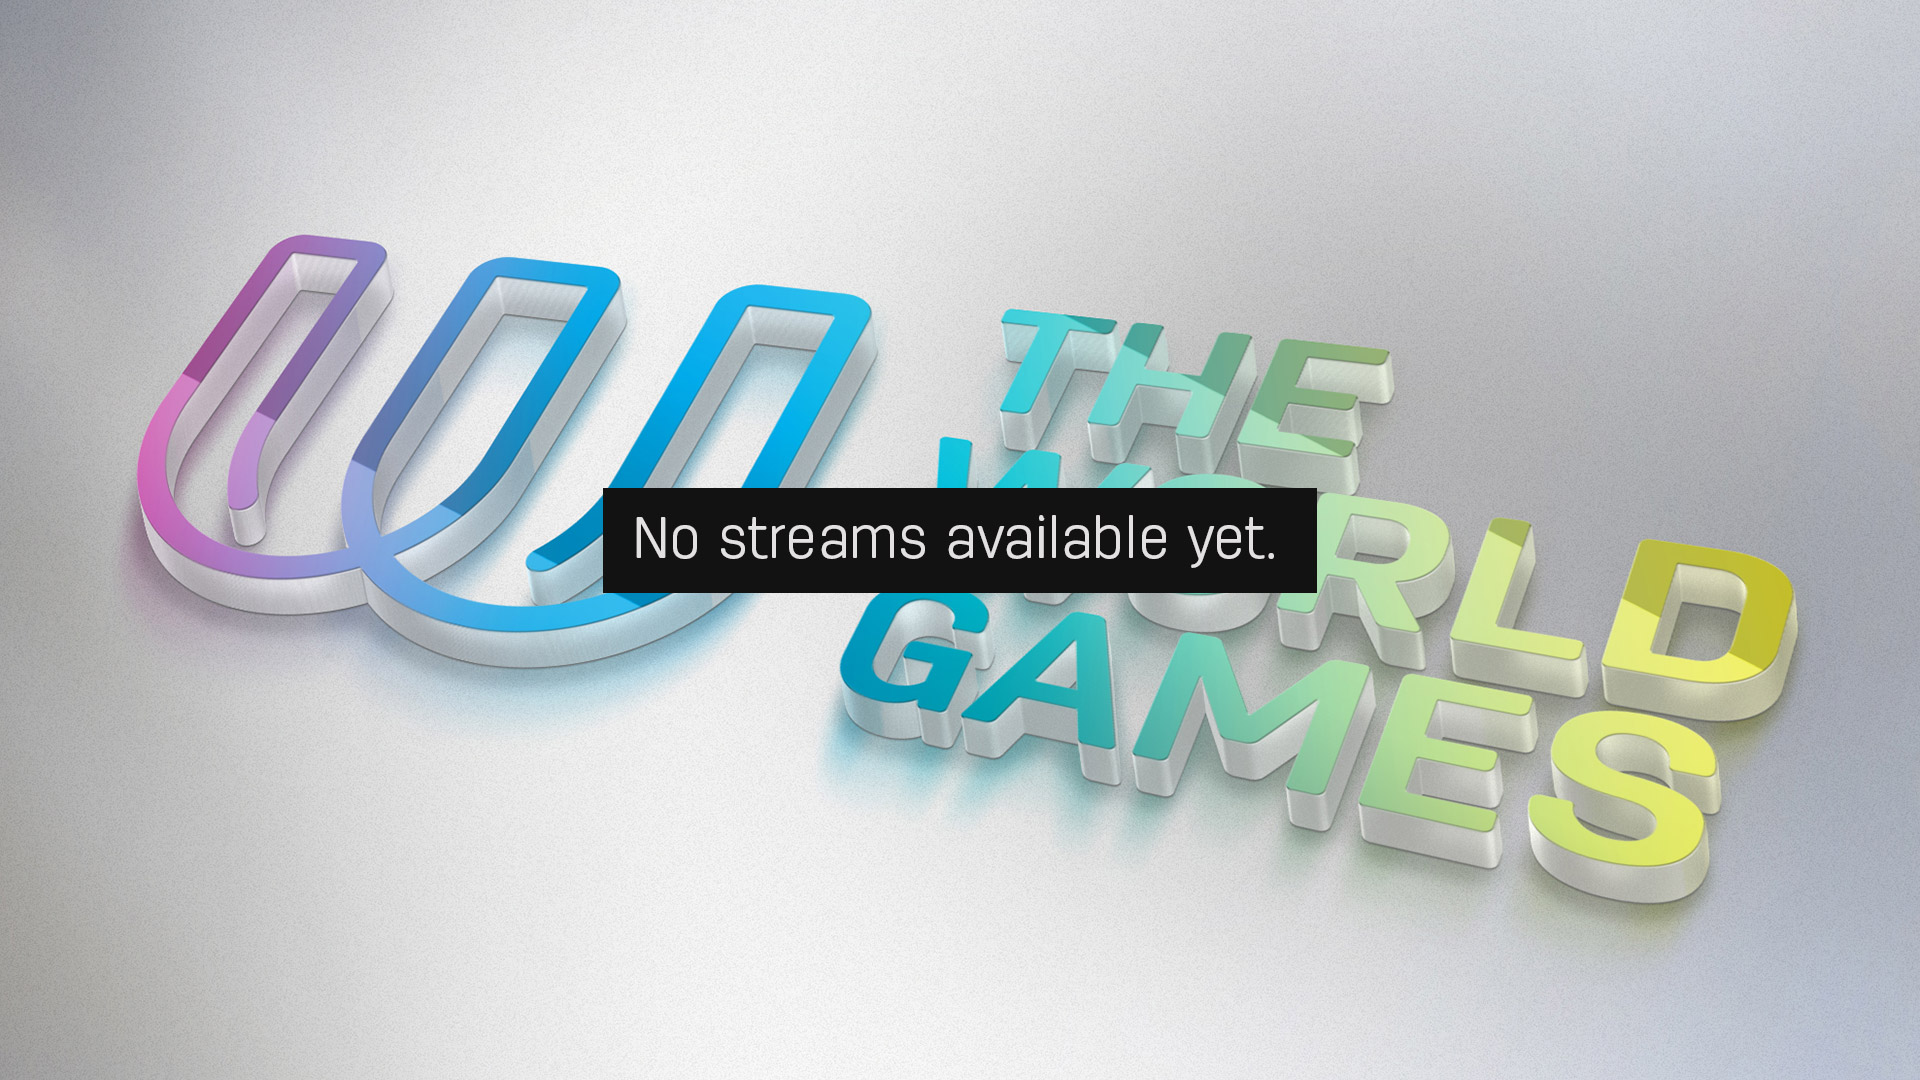 No stream available yet